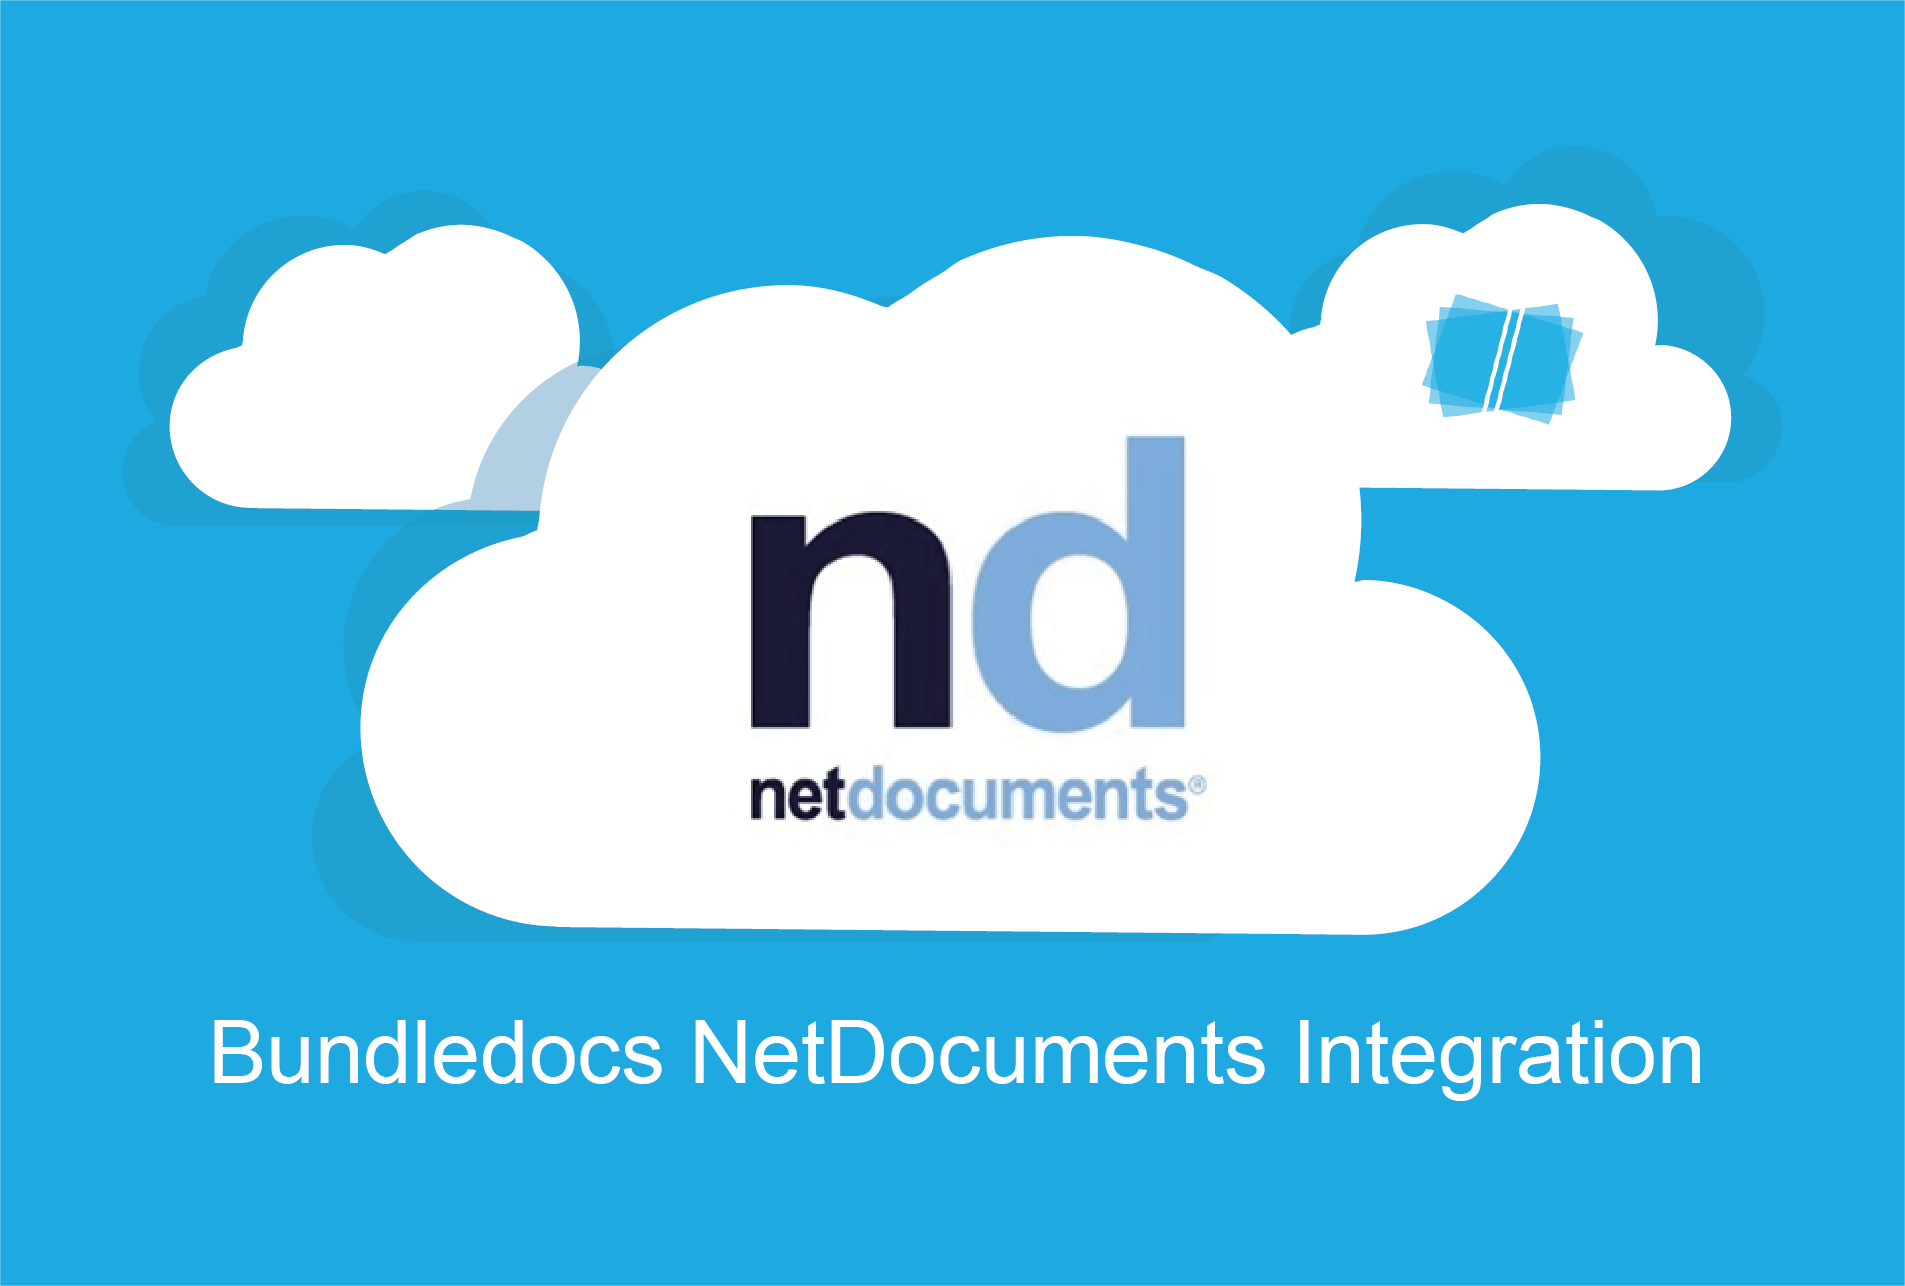 NetDocuments_Integration_with_Bundledocs_Video.PNG